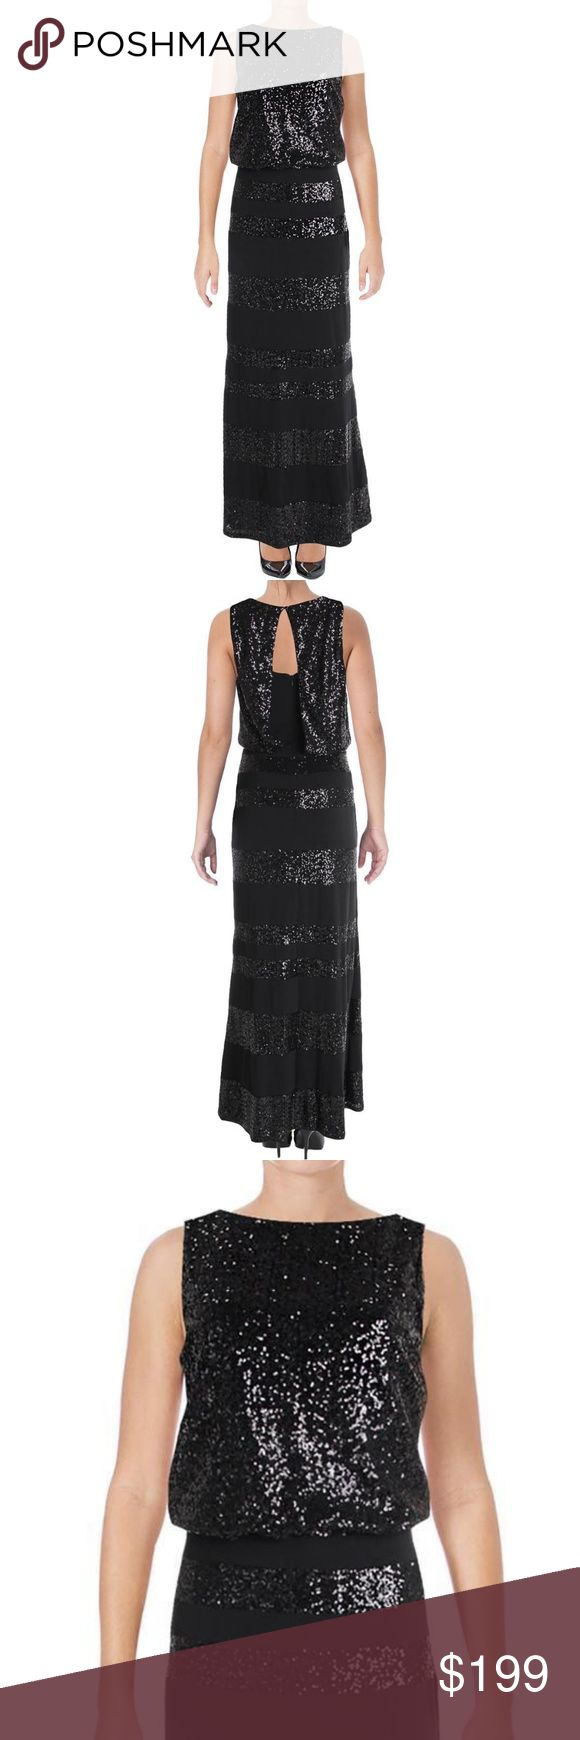 NWT Lauren Ralph Lauren Long Black Sequin Dress NWT Lauren Ralph Lauren Stunning Marcelina Long Black Sequined Formal & Special Occasion Sleeveless Dress. An elegantly draped bodice & a floor-length skirt define the modern glamour of this evening-ready gown from Lauren Ralph Lauren. Allover sequin embellished top with a semi-opened back that flows effortlessly down your back on this shimmering sequined gown. The bottom portion is designed with sequin stripes.   Concealed center back zipper…